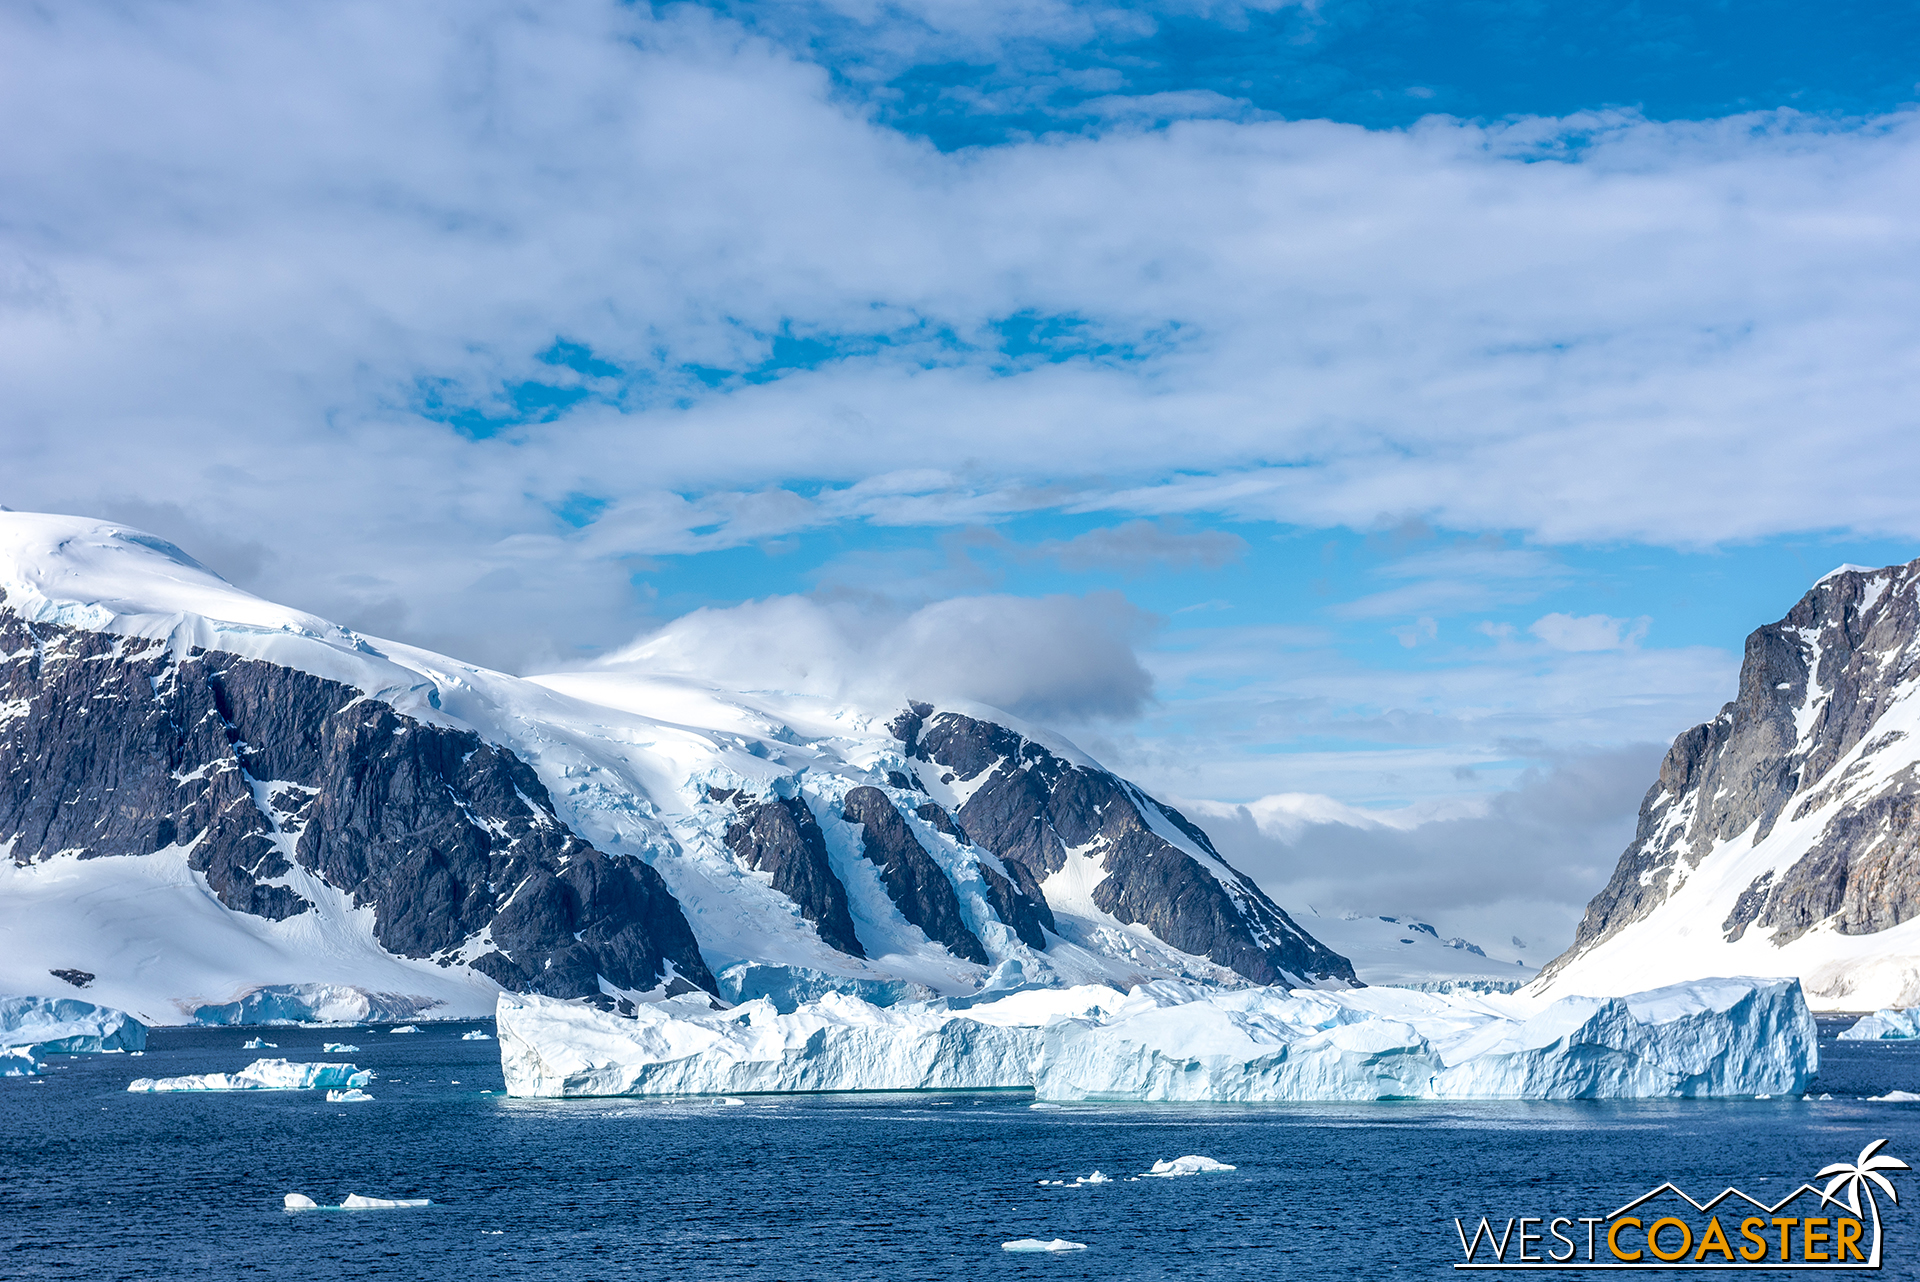 Mountains, snow, icebergs... THIS is the Antarctica most envision!